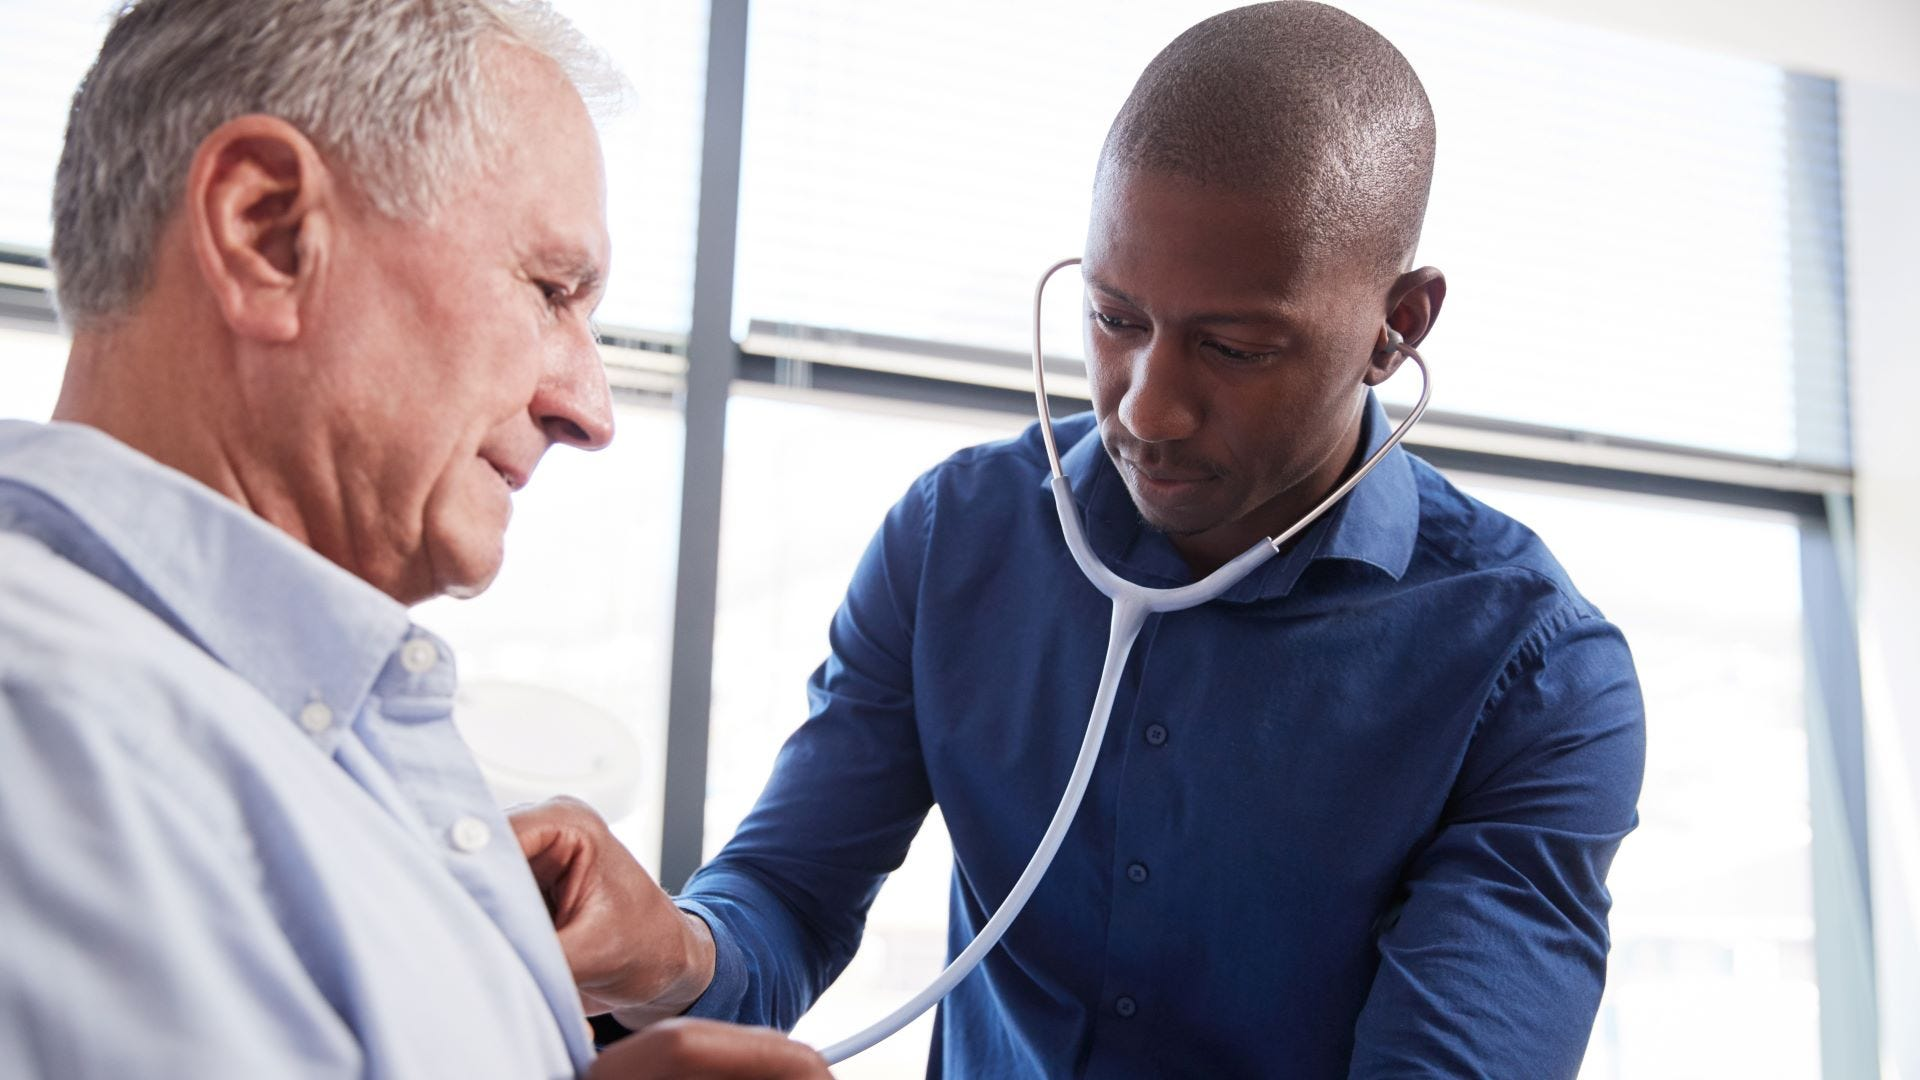 A doctor wearing a stethoscope and listening to a senior male's heartbeat.